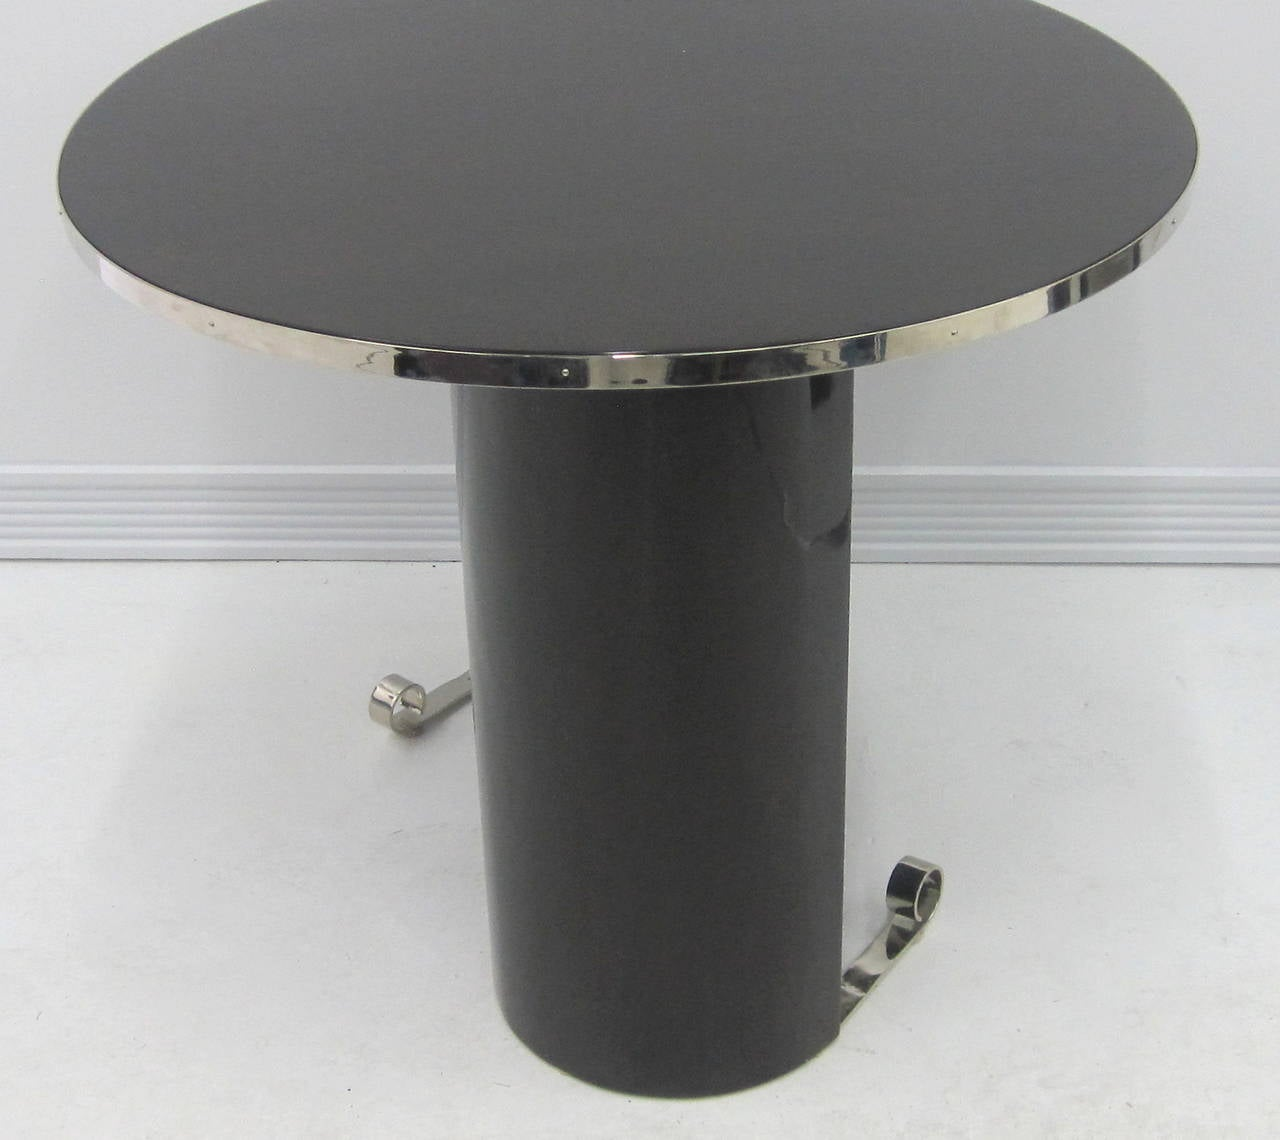 Mid-20th Century French Modernist Art Deco Table For Sale